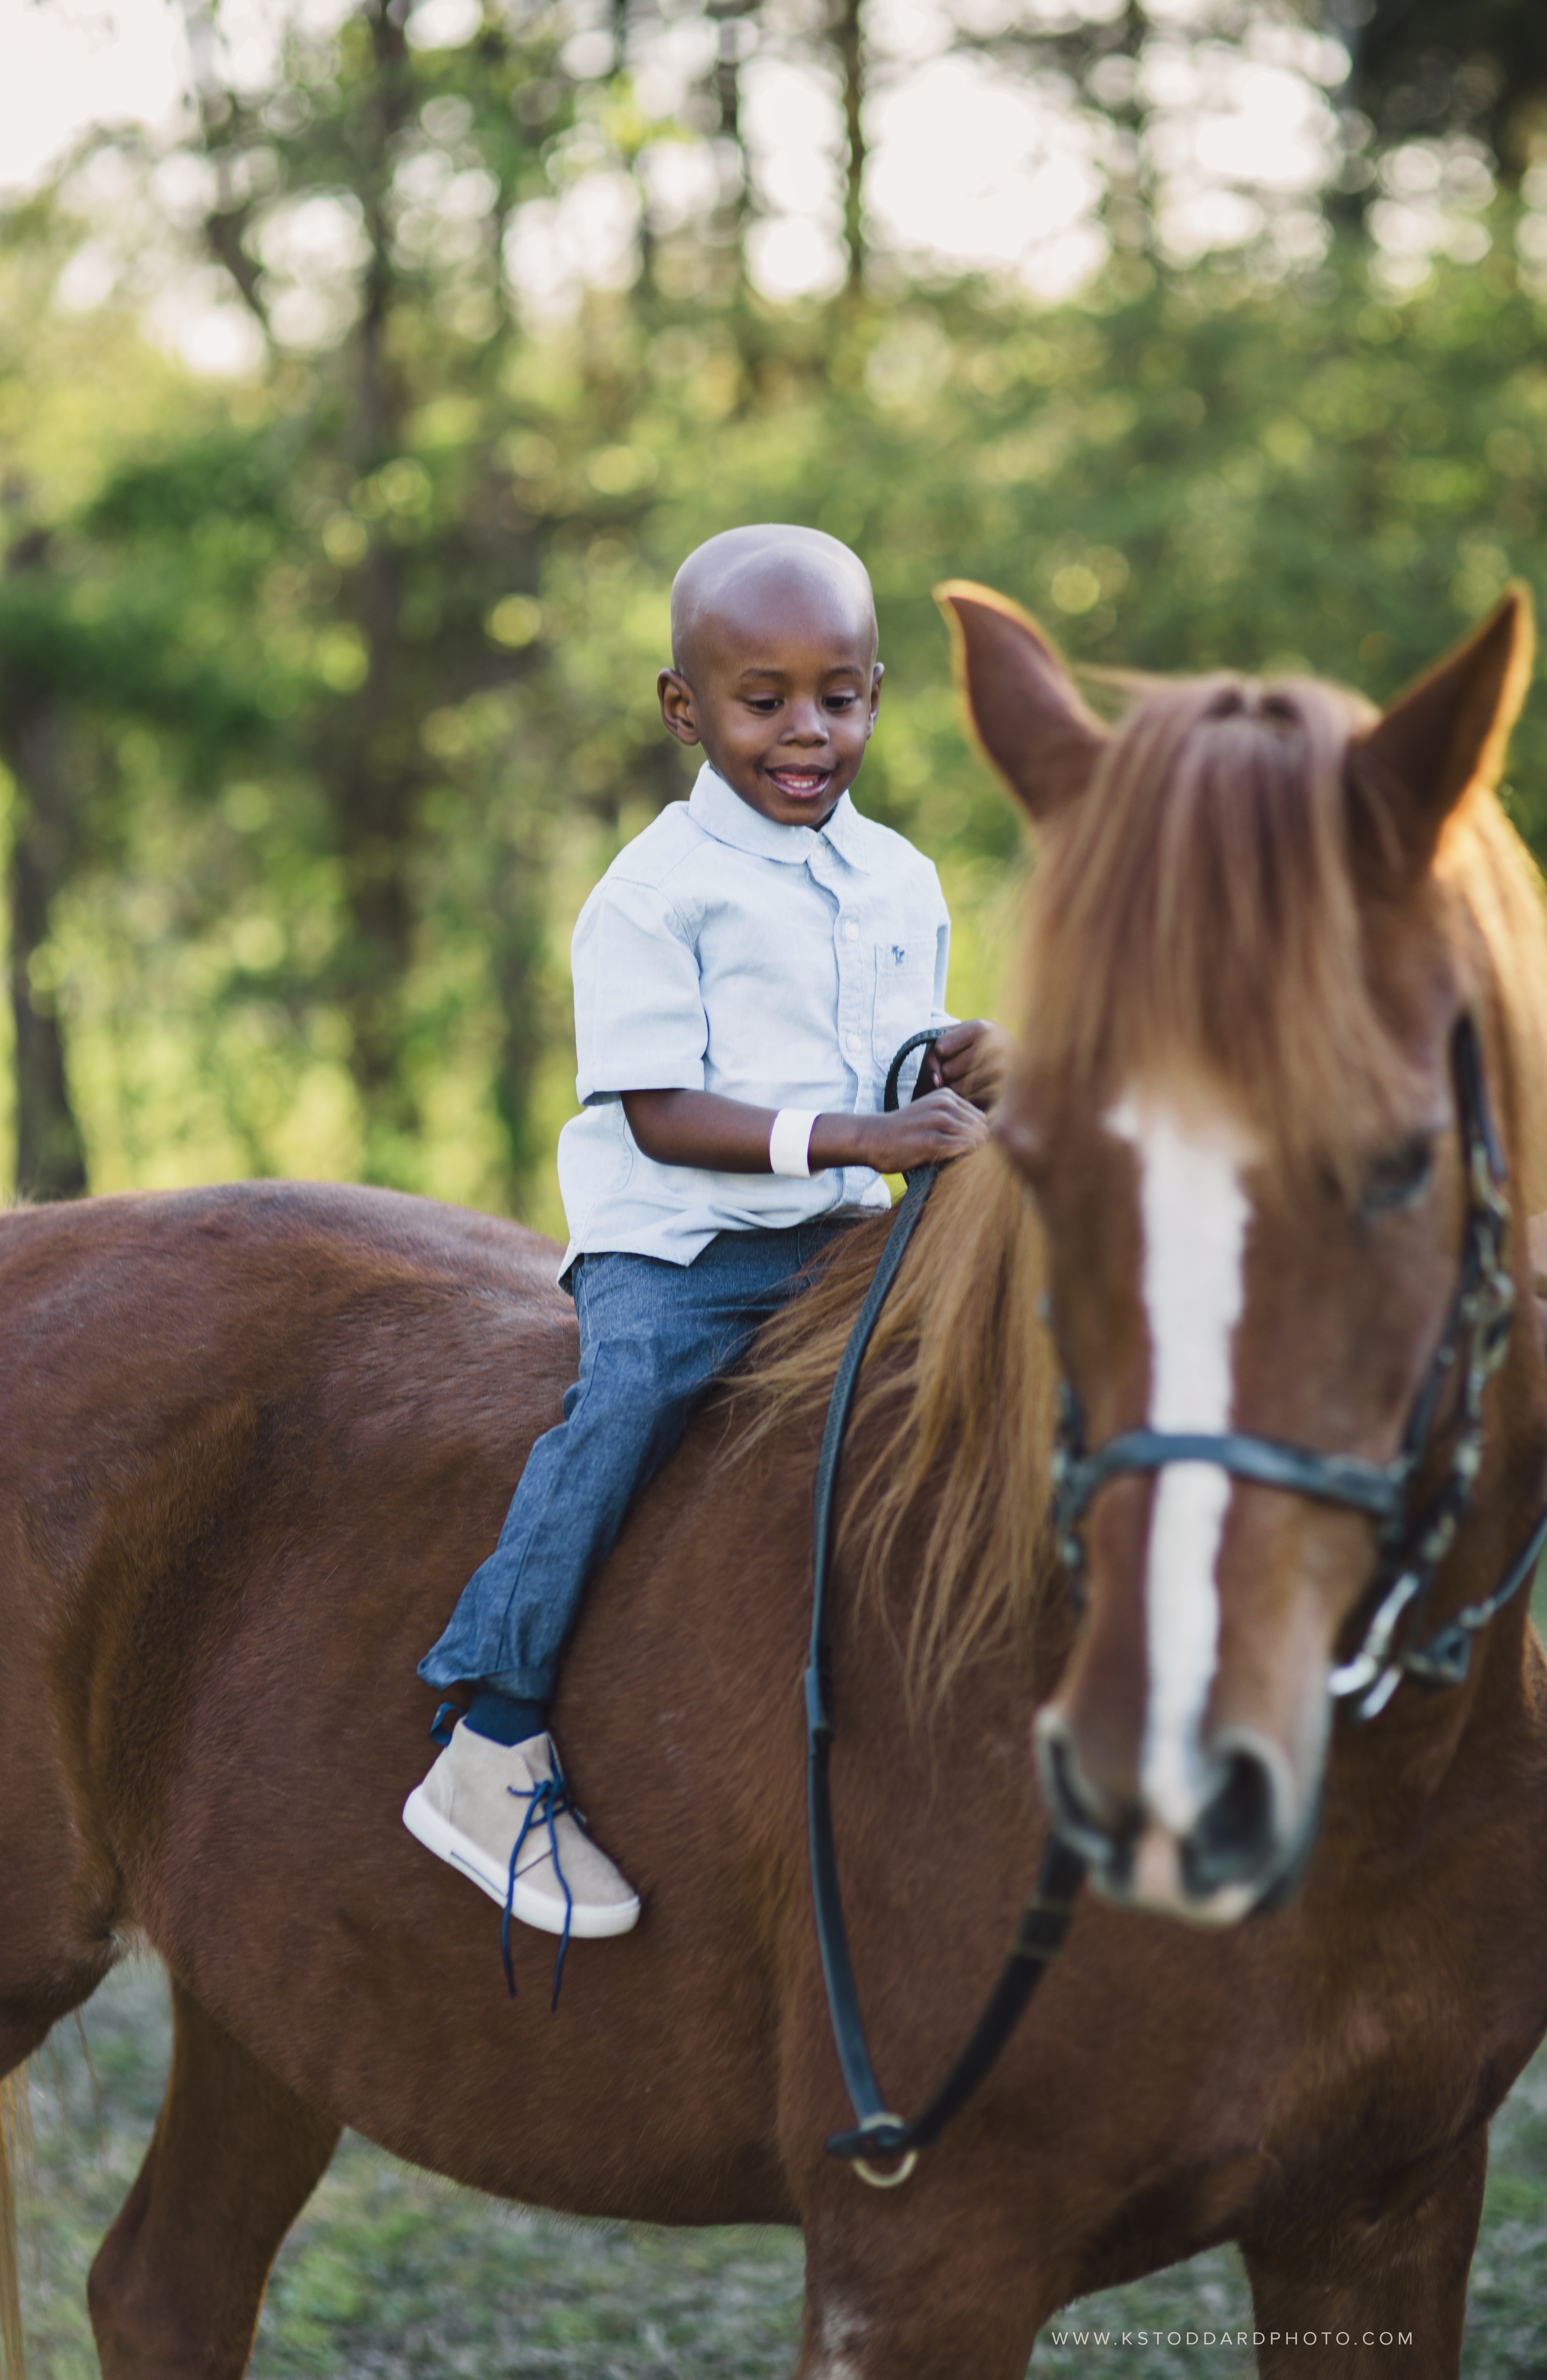 K'meil and Family - St. Jude Children's Research Hospital - Memphis - K. Stoddard Photography 007.jpg